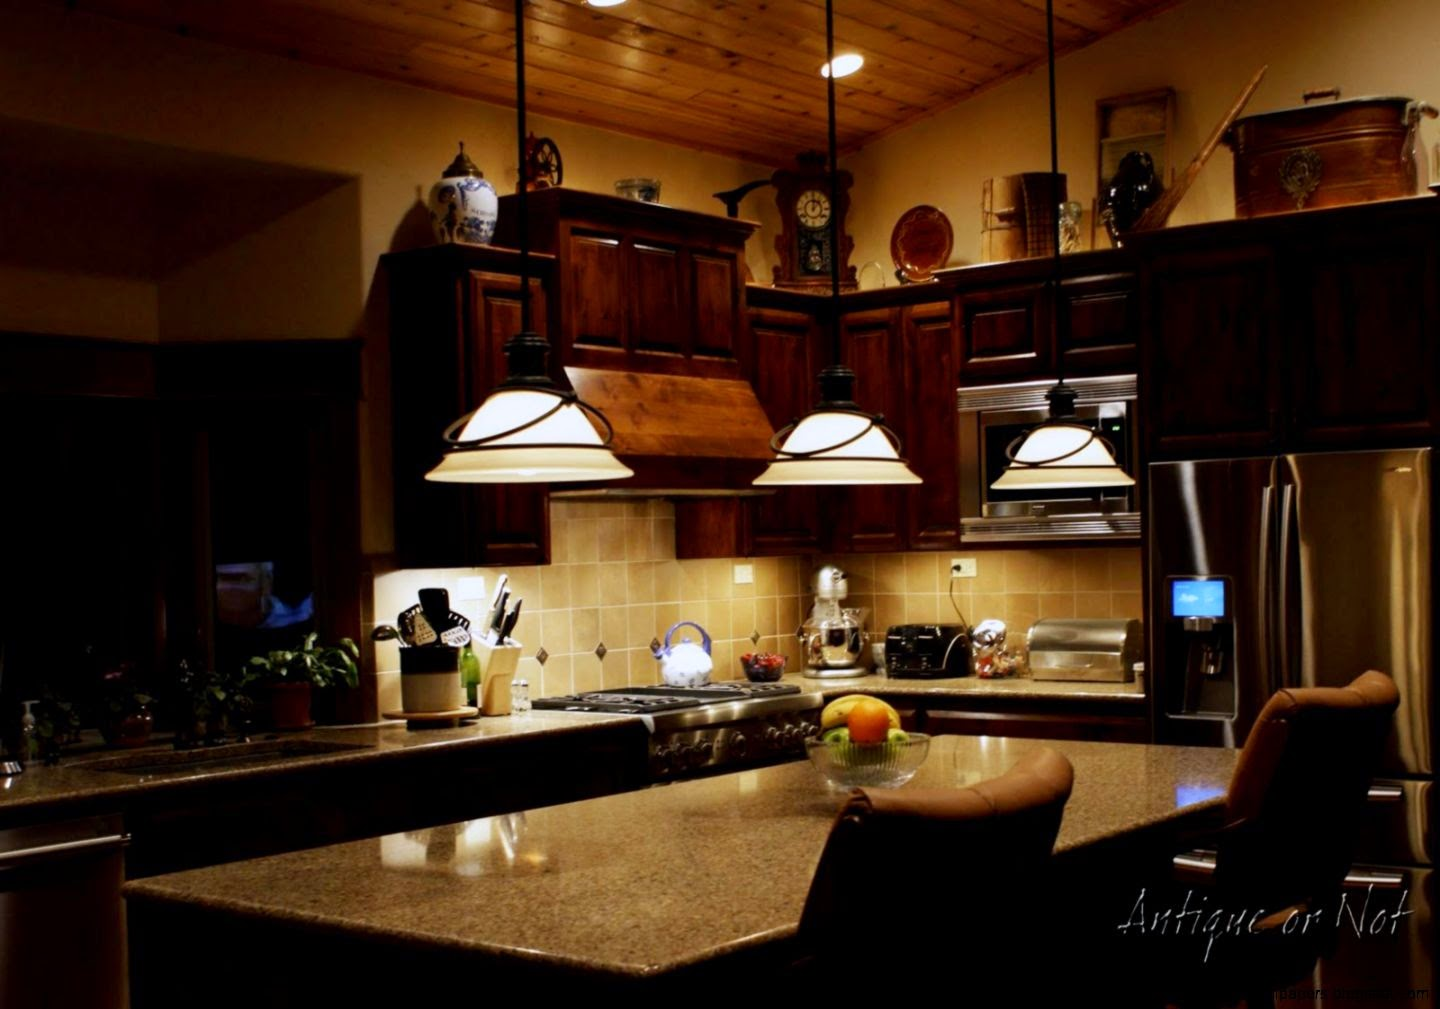 DECORATING IDEAS FOR TOP OF KITCHEN CABINETS World Decor Ideas